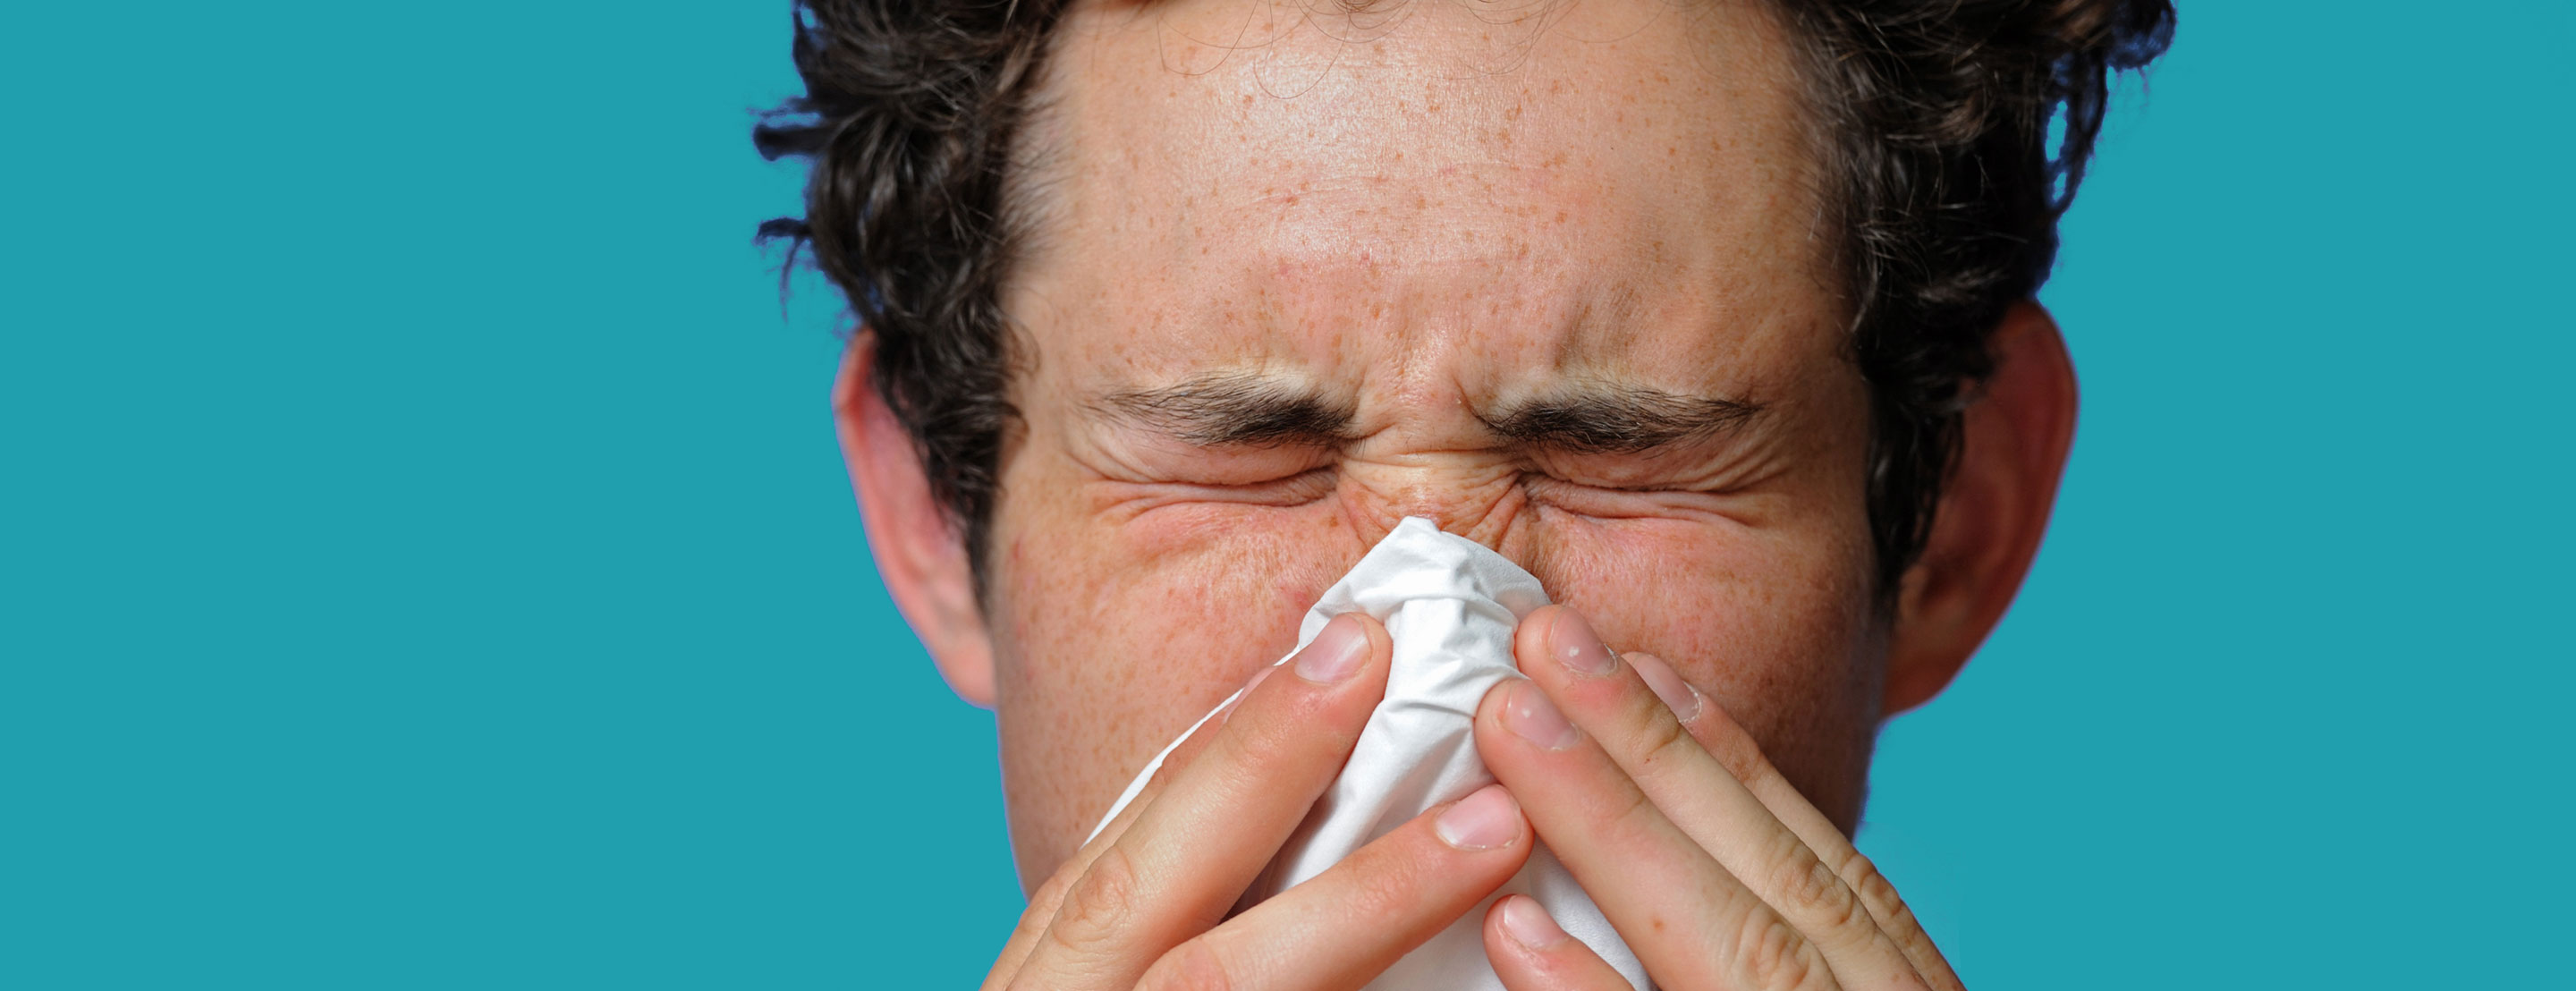 man sneezing from seasonal allergies